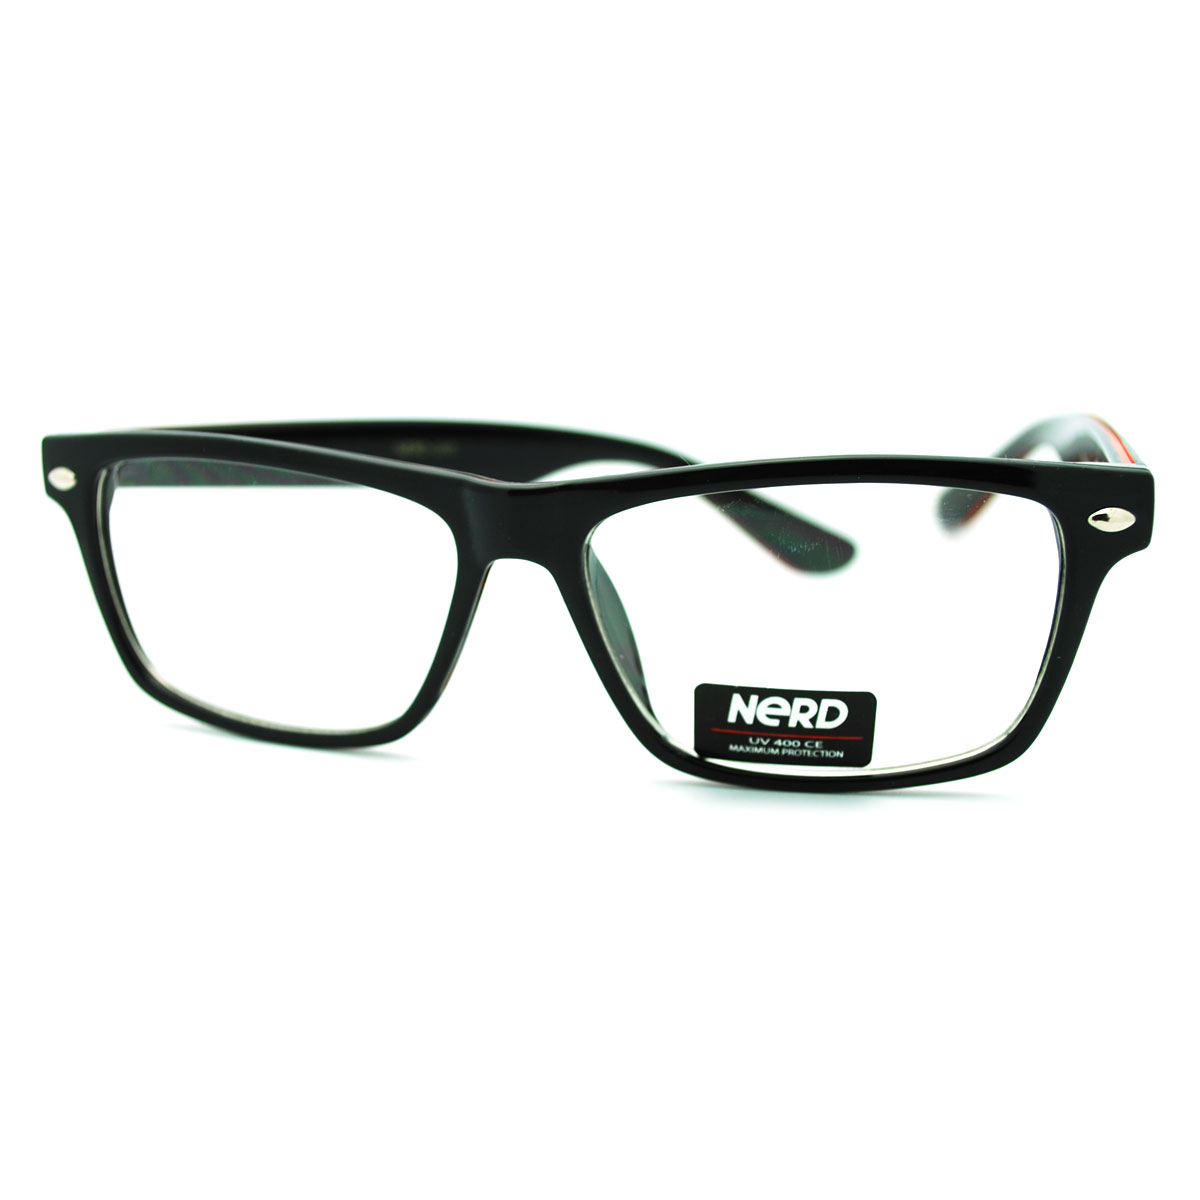 Glasses Frames Too Narrow : Trendy Narrow Rectangular Clear Lens Eye Glasses with ...